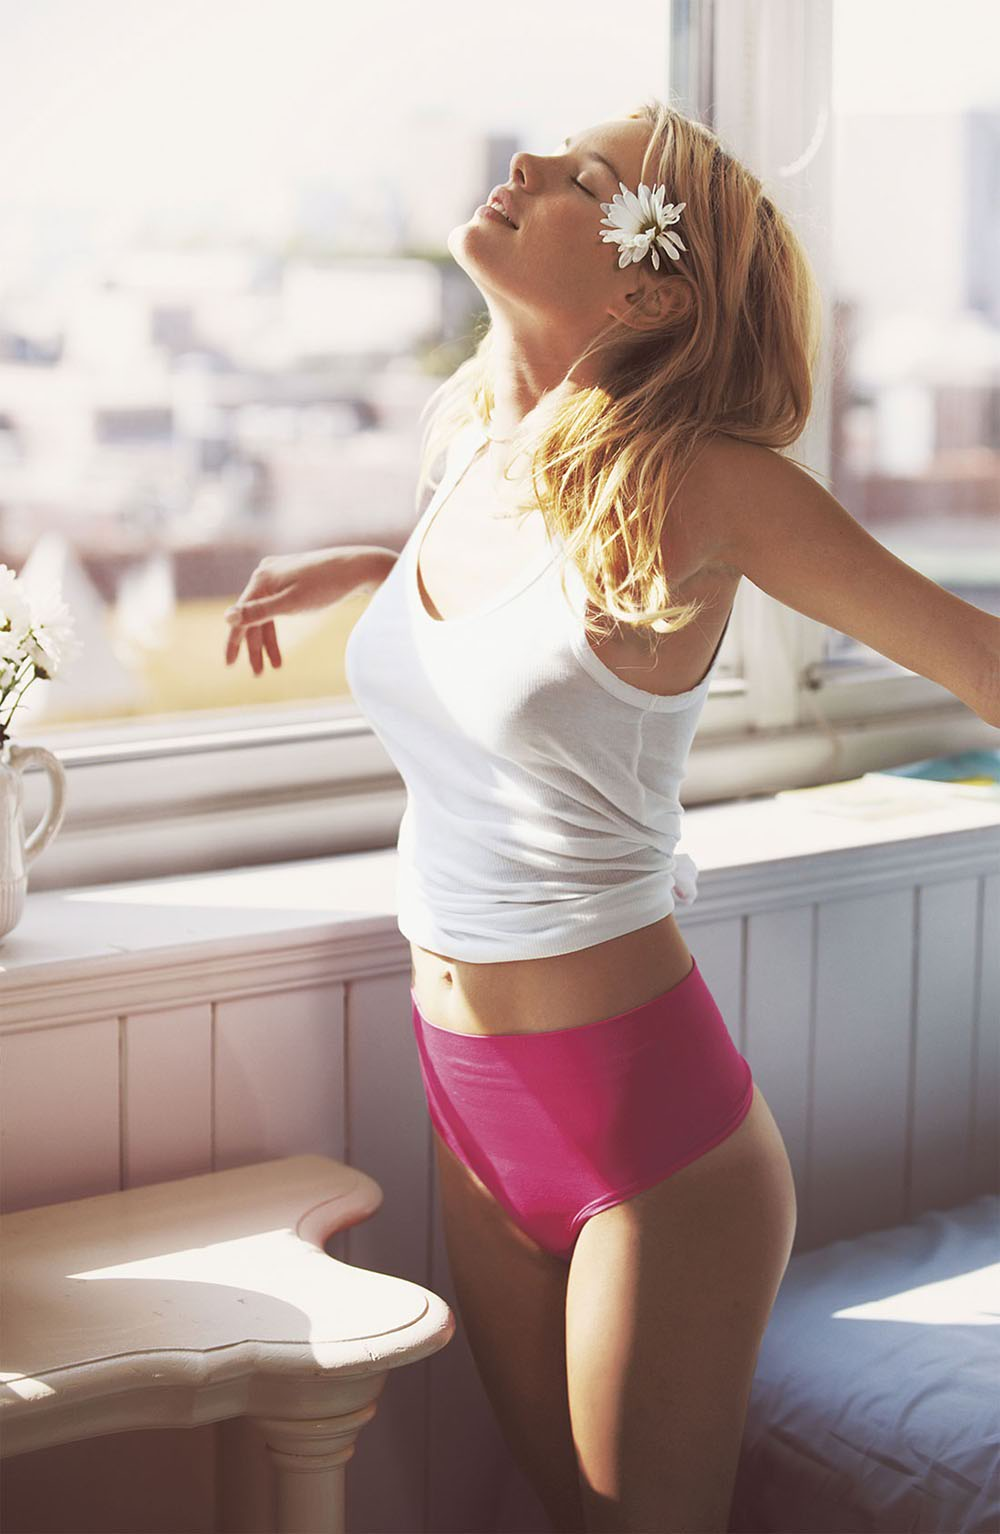 camille rowe0157789685